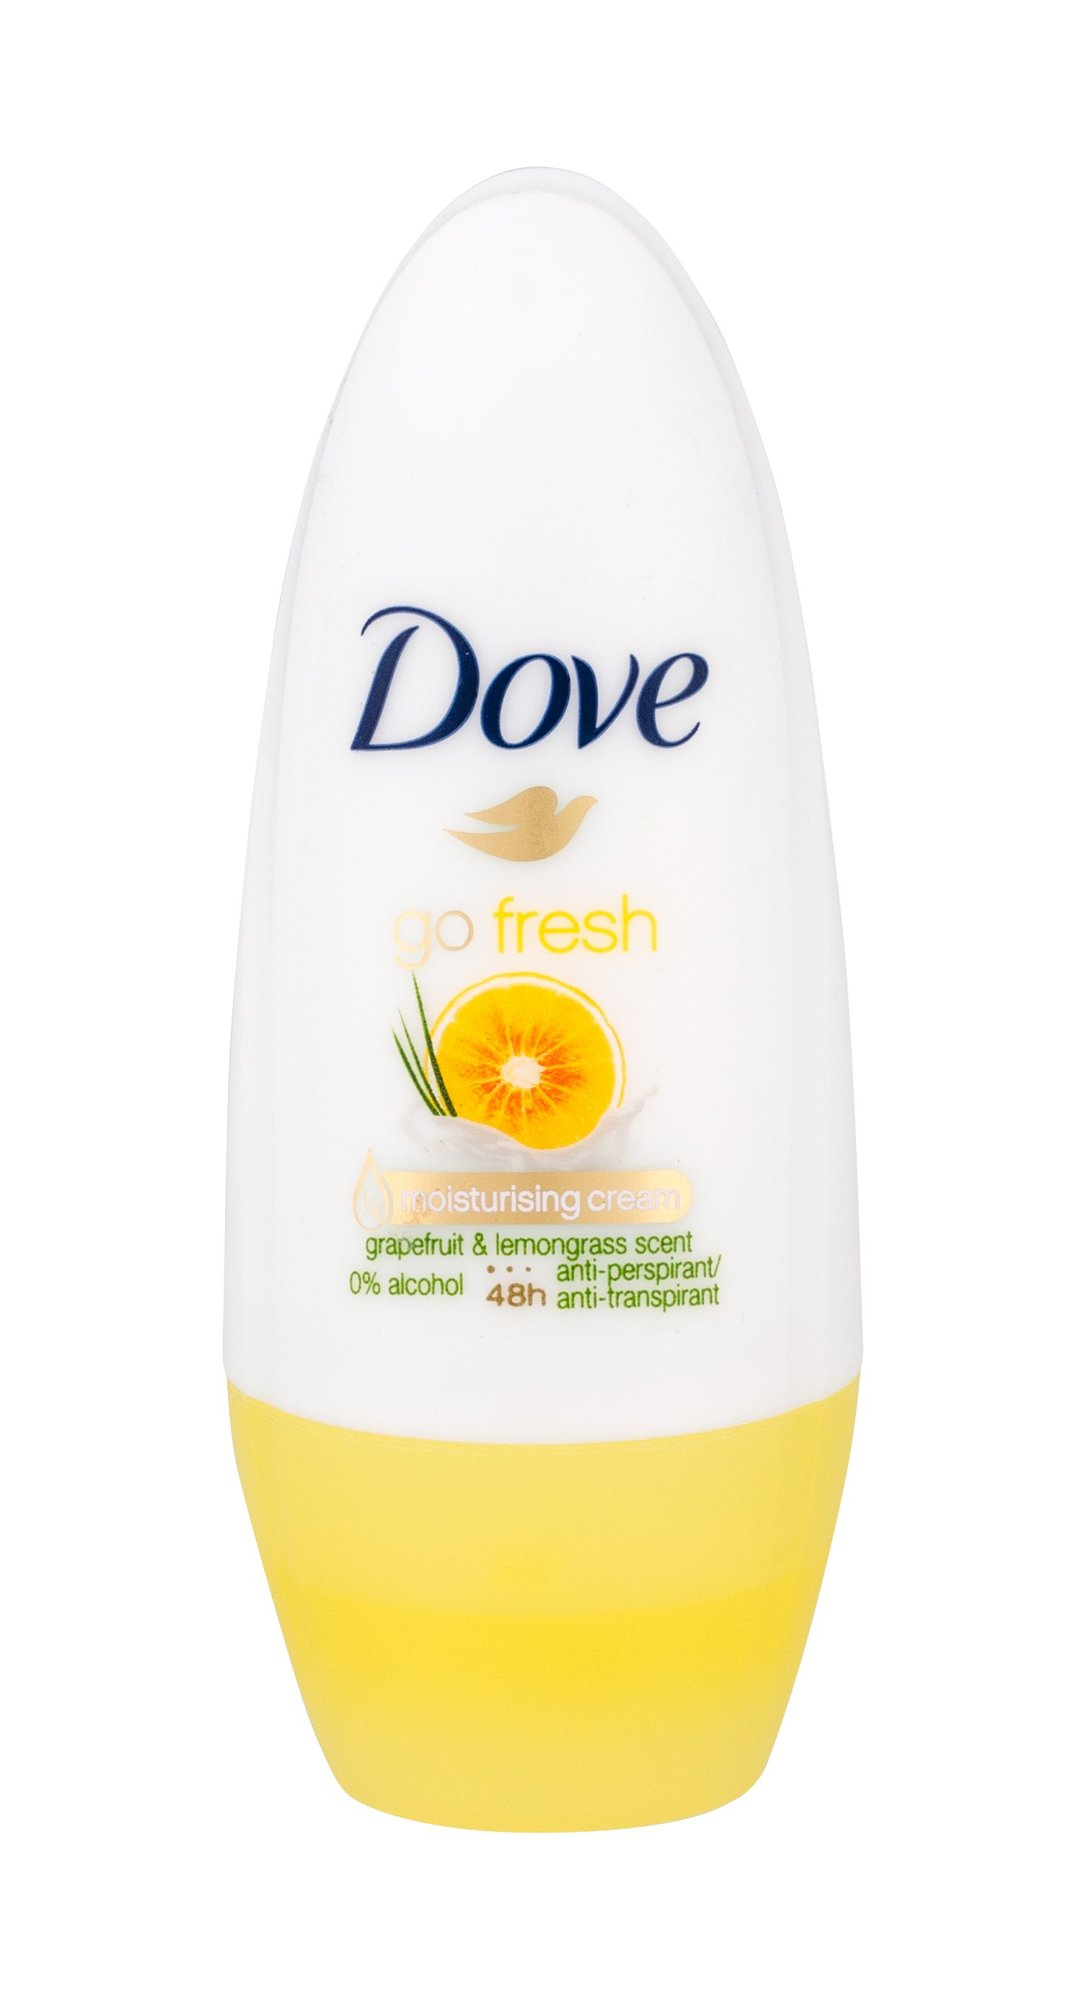 Dove Go Fresh 48h Antiperspirant, W, 50 ml